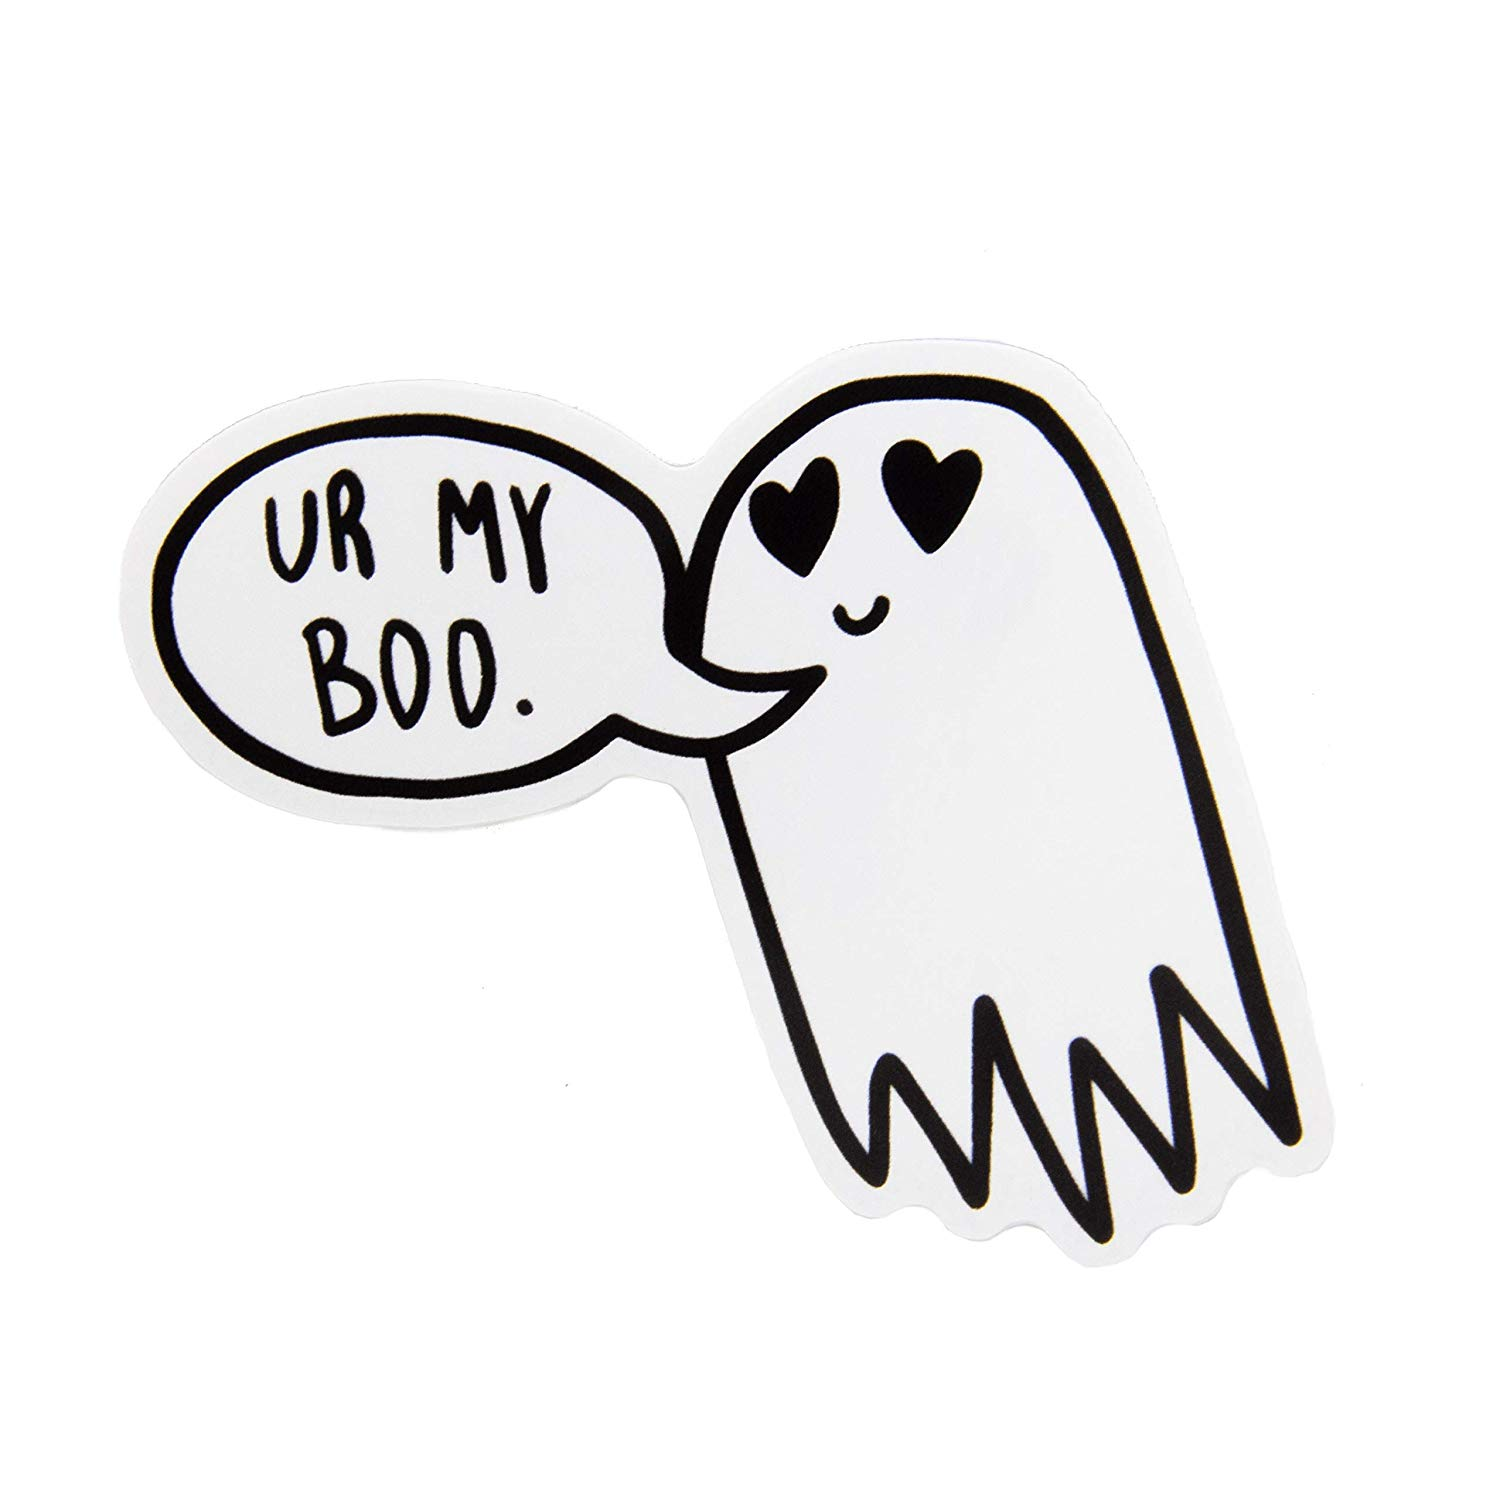 Spooky clipart sticker. Ectogasm ur my boo